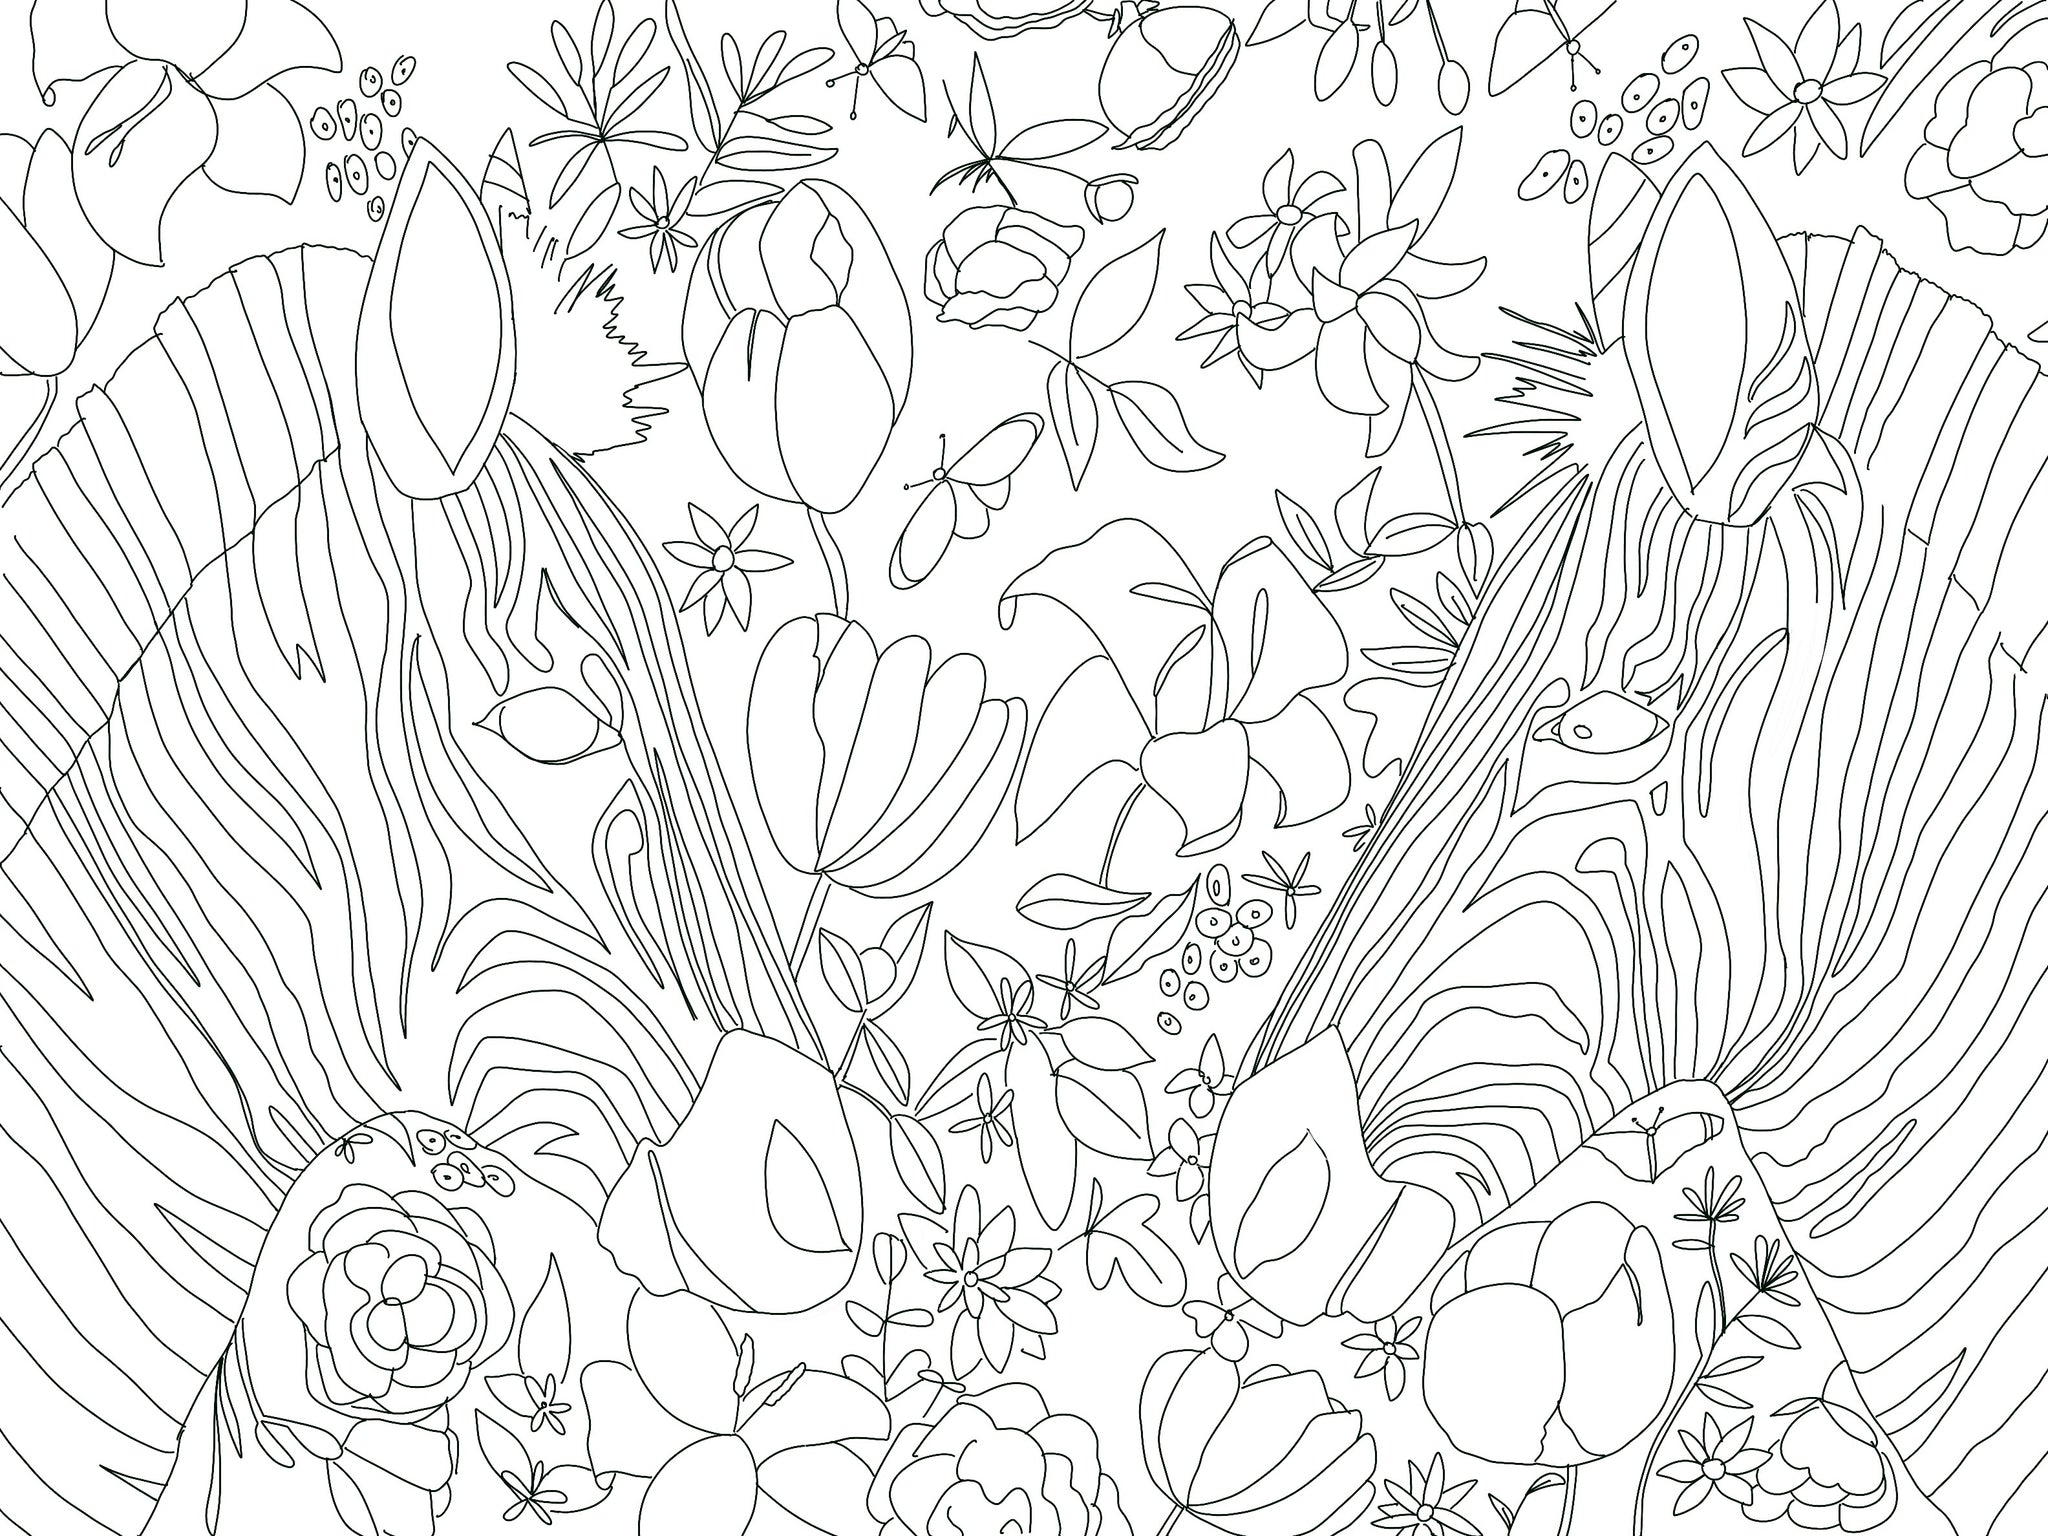 Betsey Johnson's Safari Digital Coloring Page for ProCreate